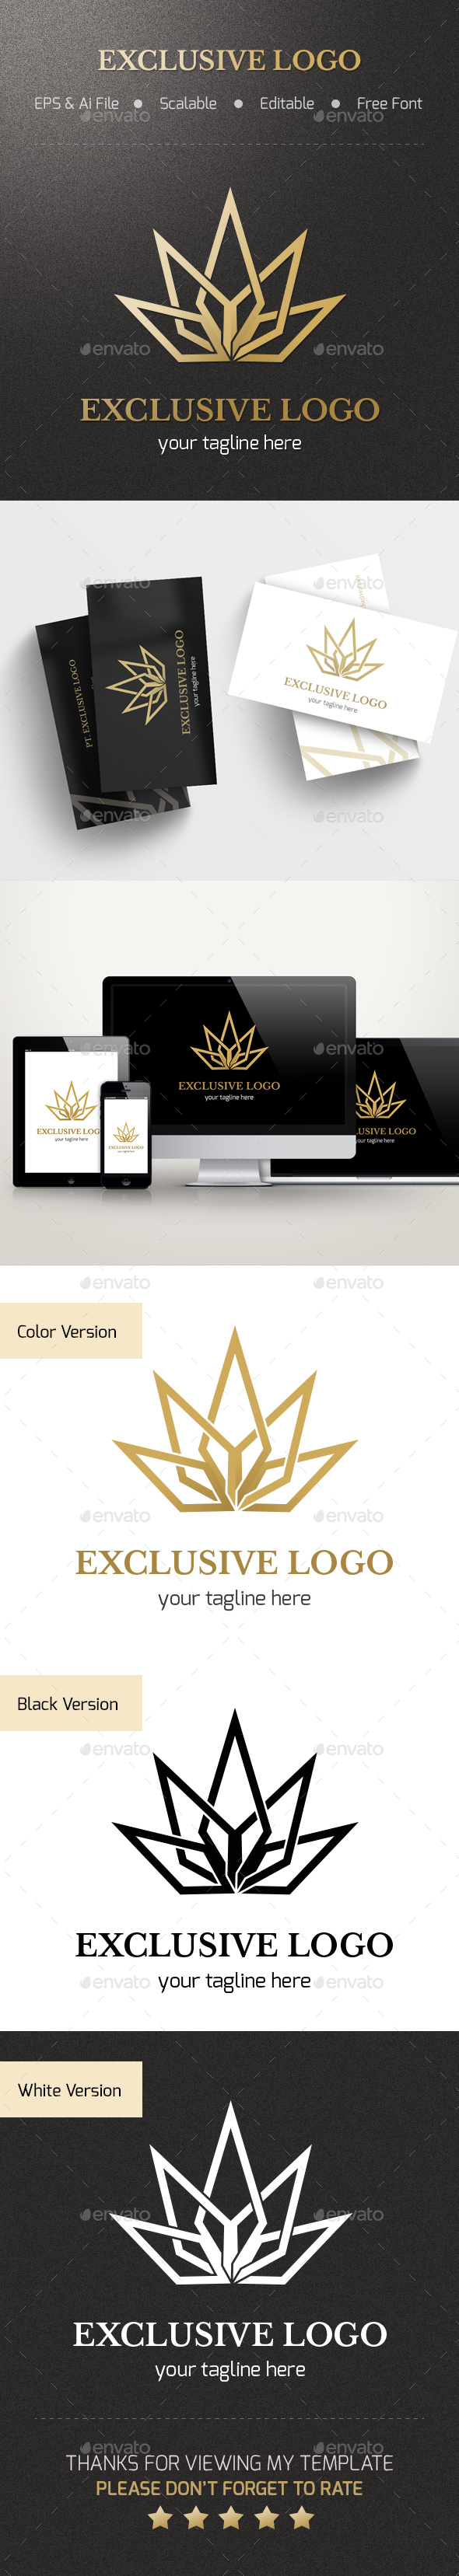 Exclusive Logo - Abstract Logo Templates